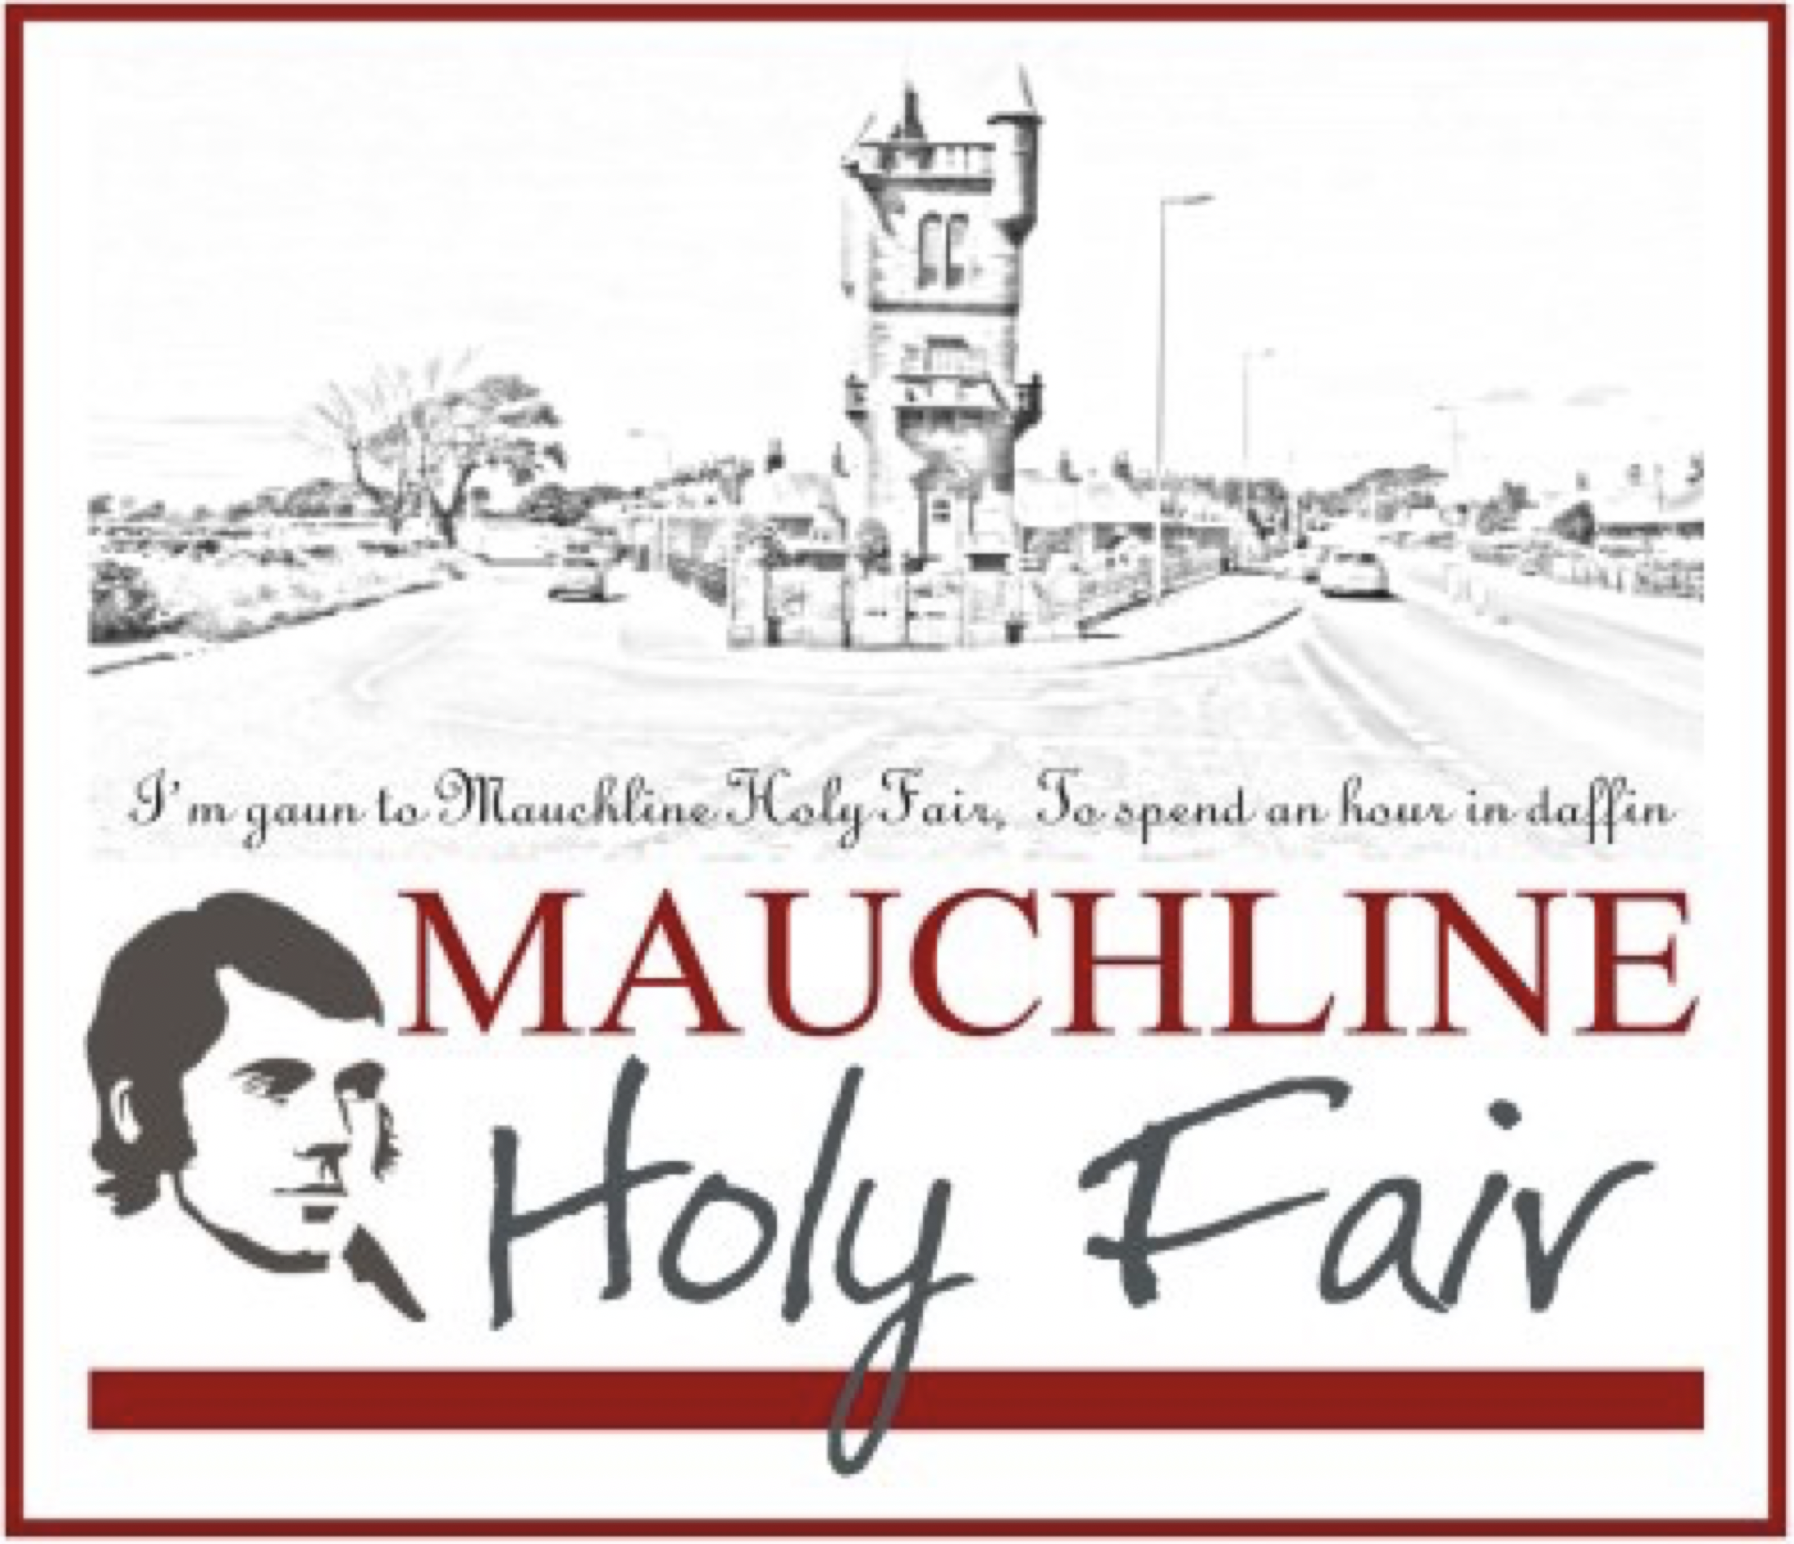 Mauchline Holy Fair